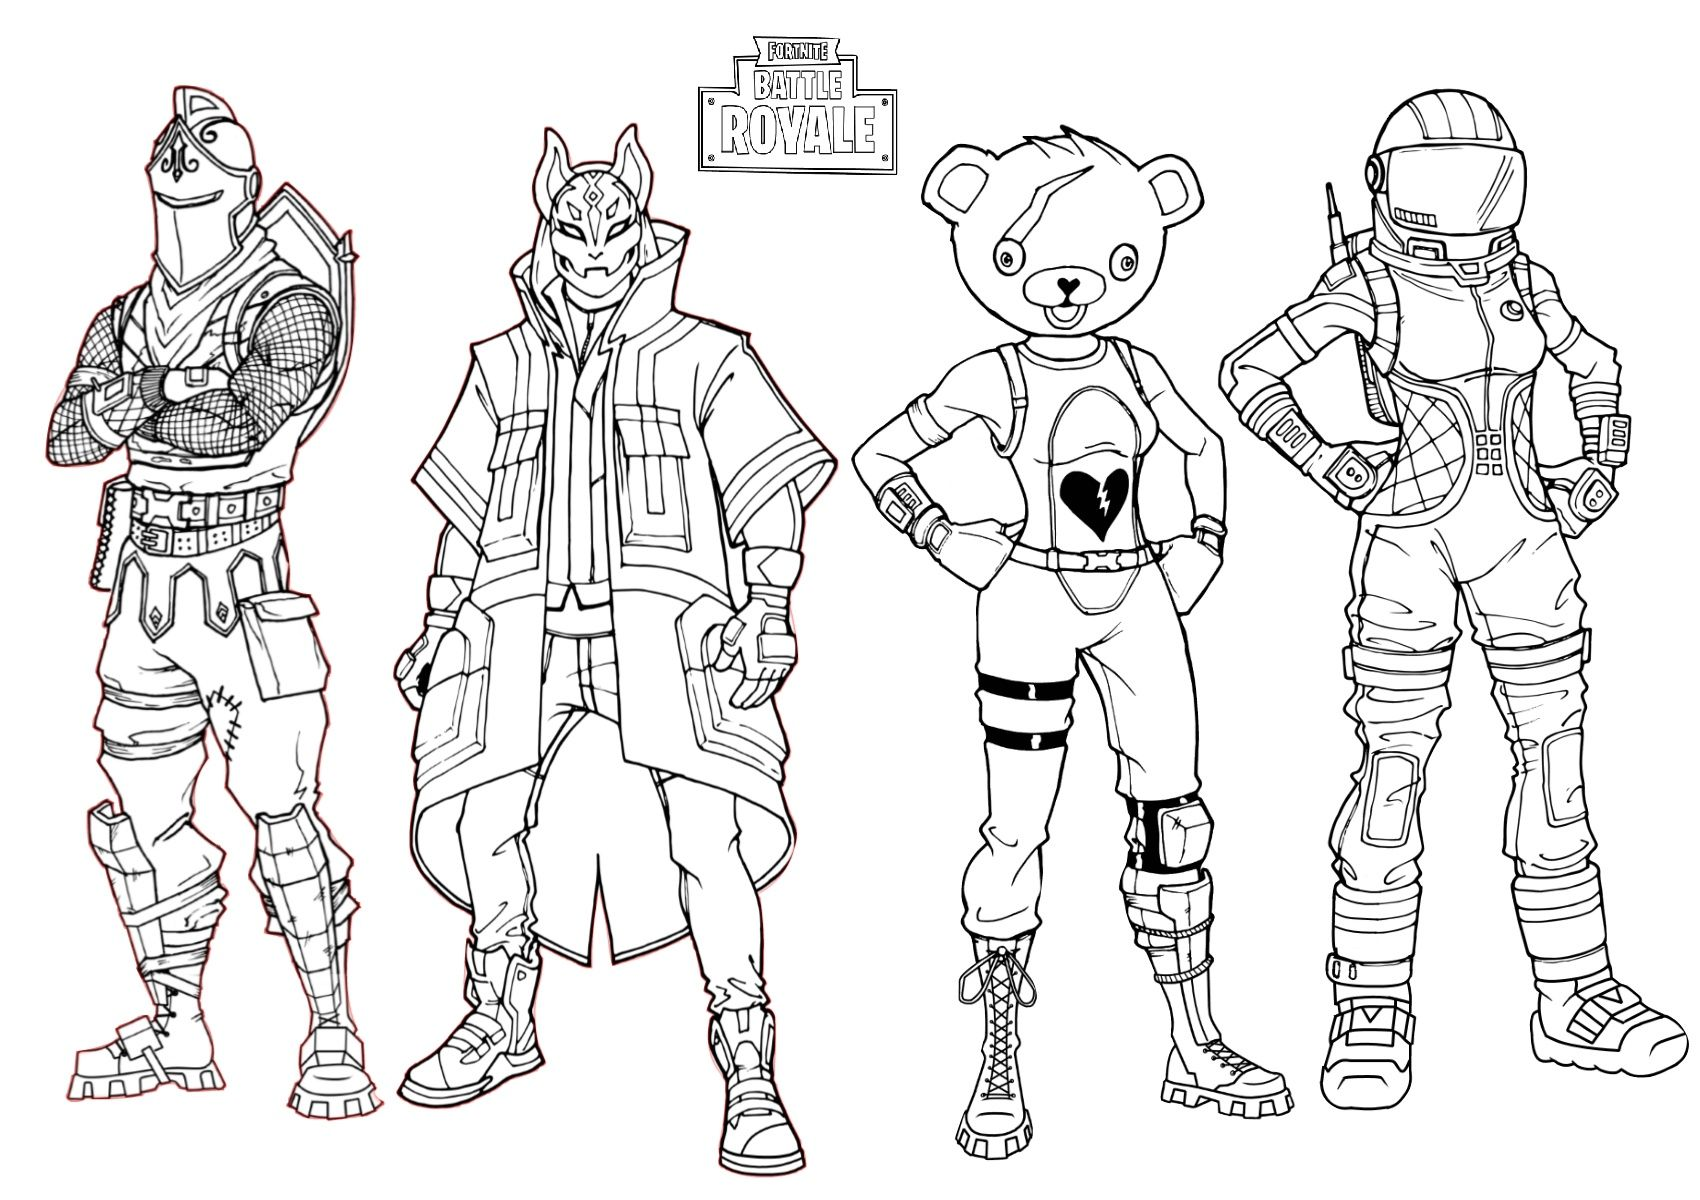 Video Game Coloring Pages New Game Controller Coloring Page Sketch Coloring Page Moon Coloring Pages Free Online Coloring Coloring Pages